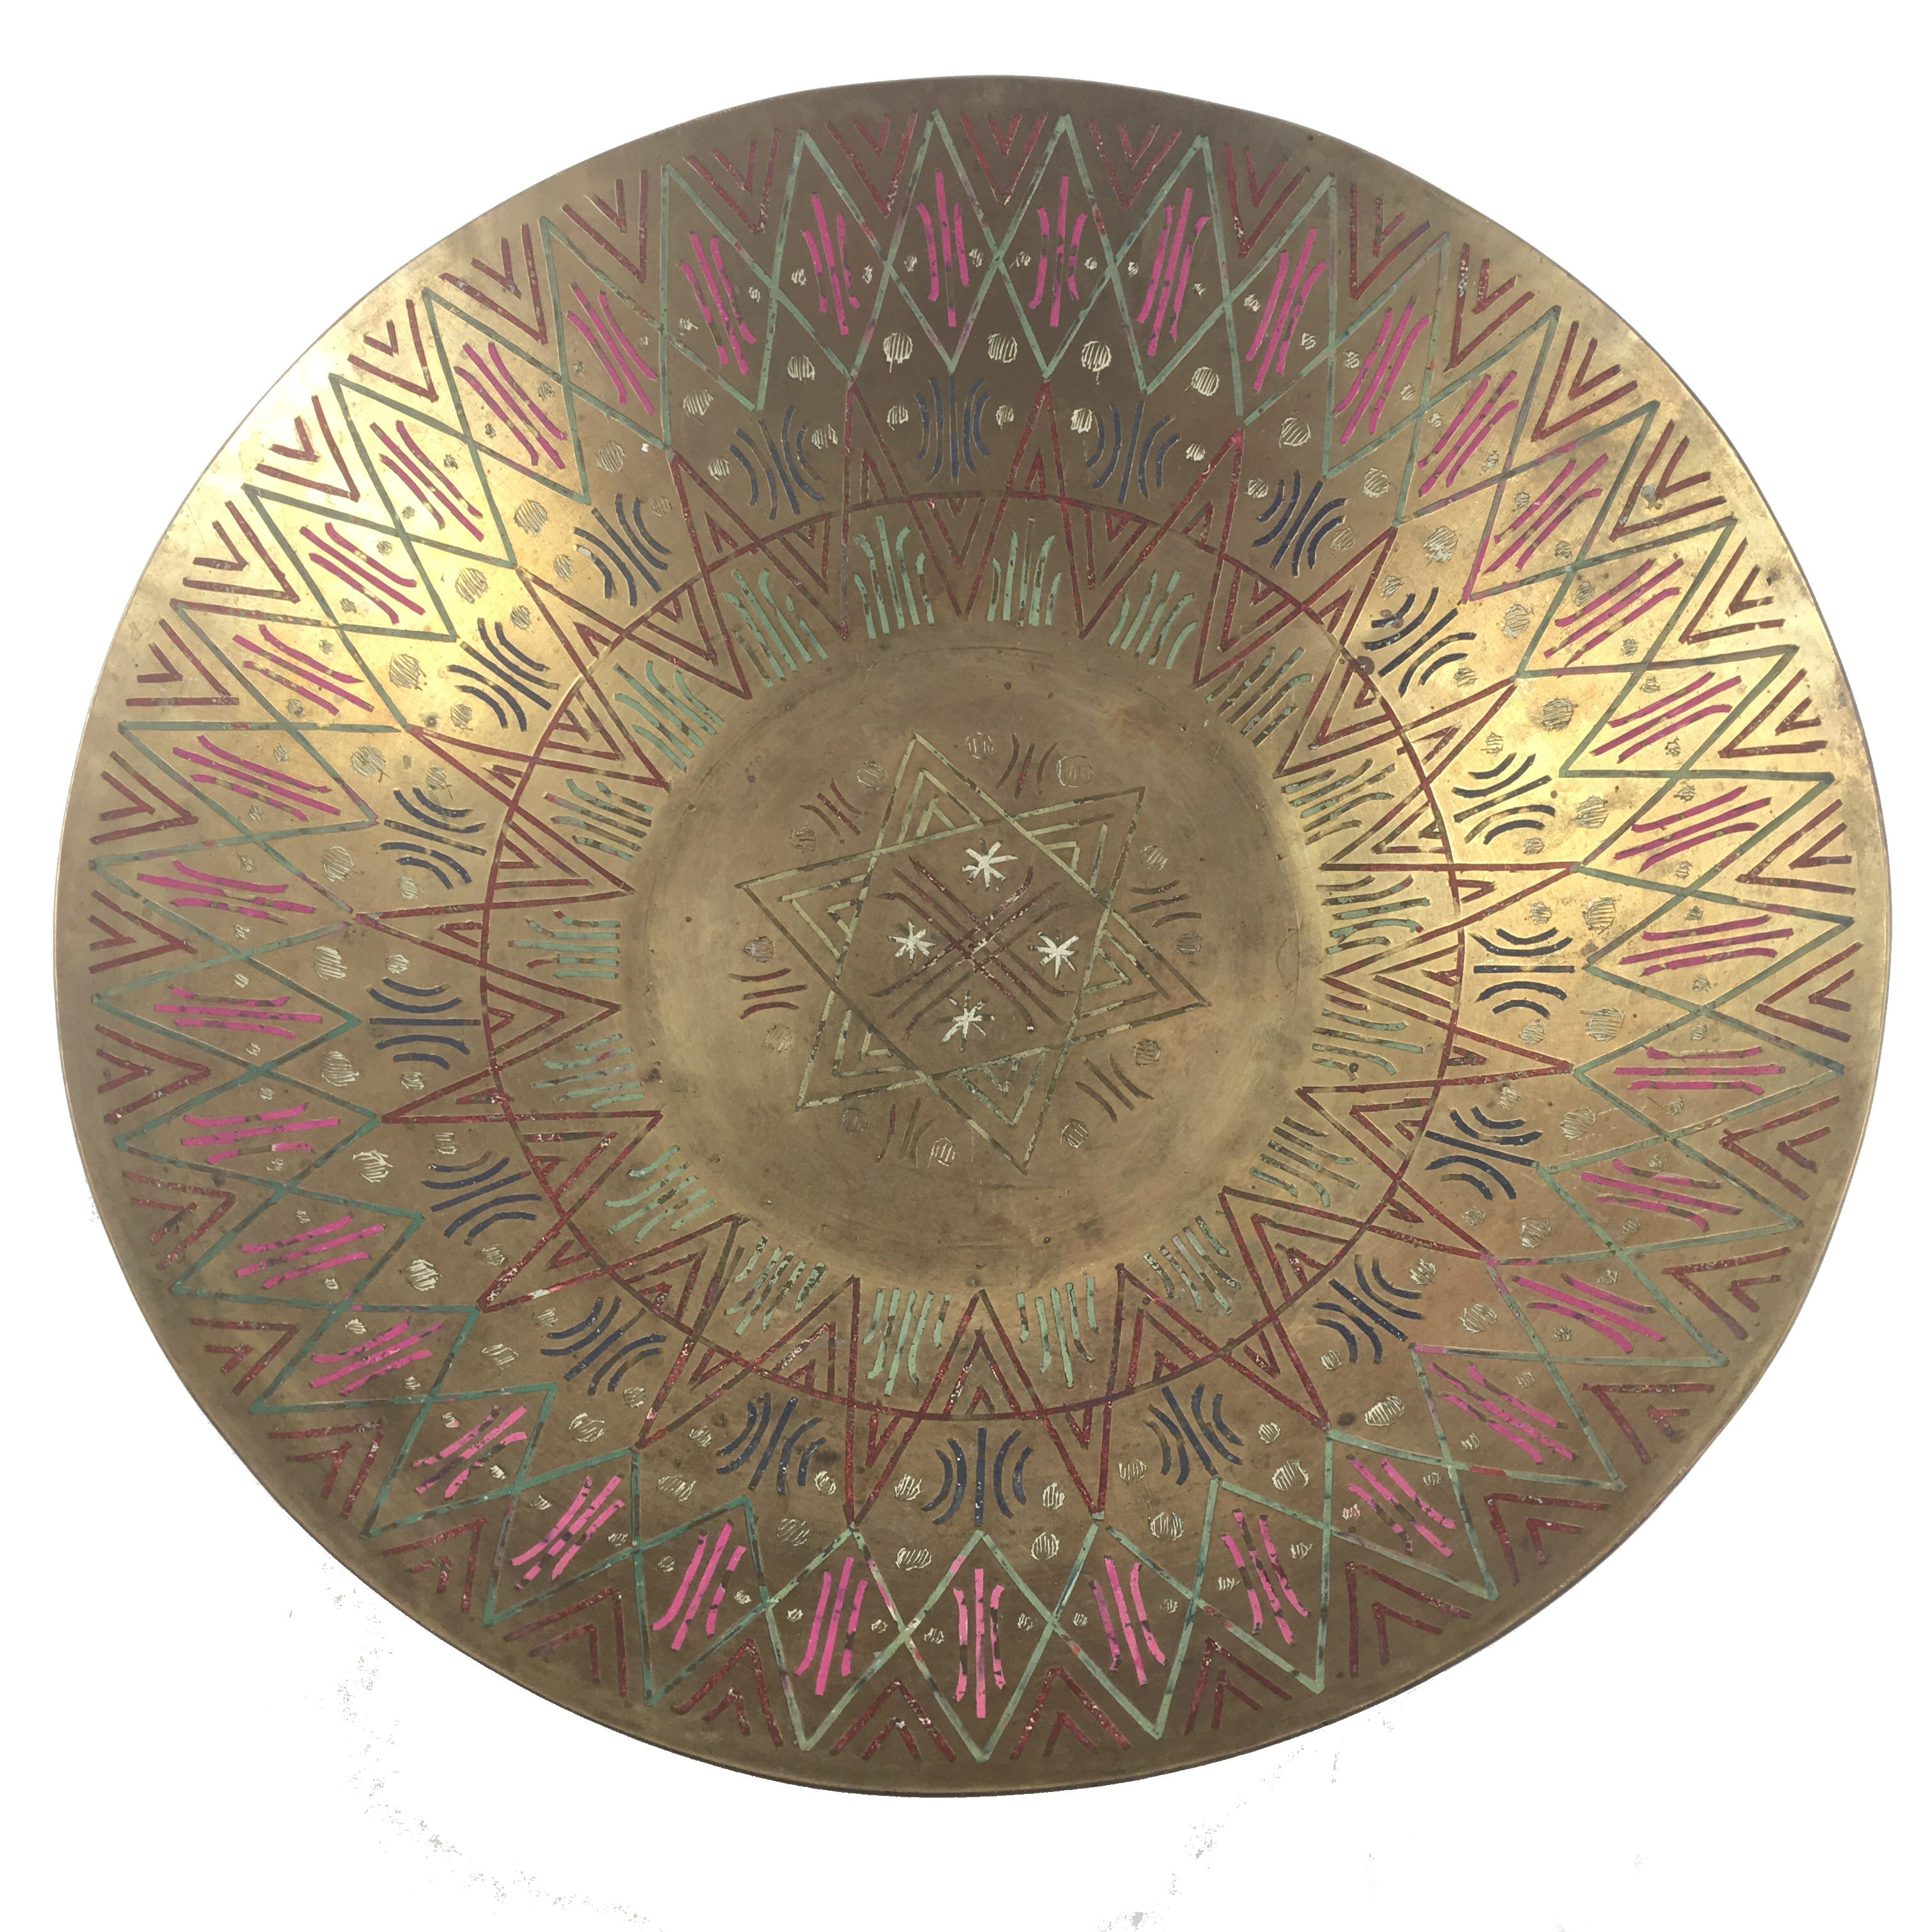 Brass Bowl with Colored Engraving